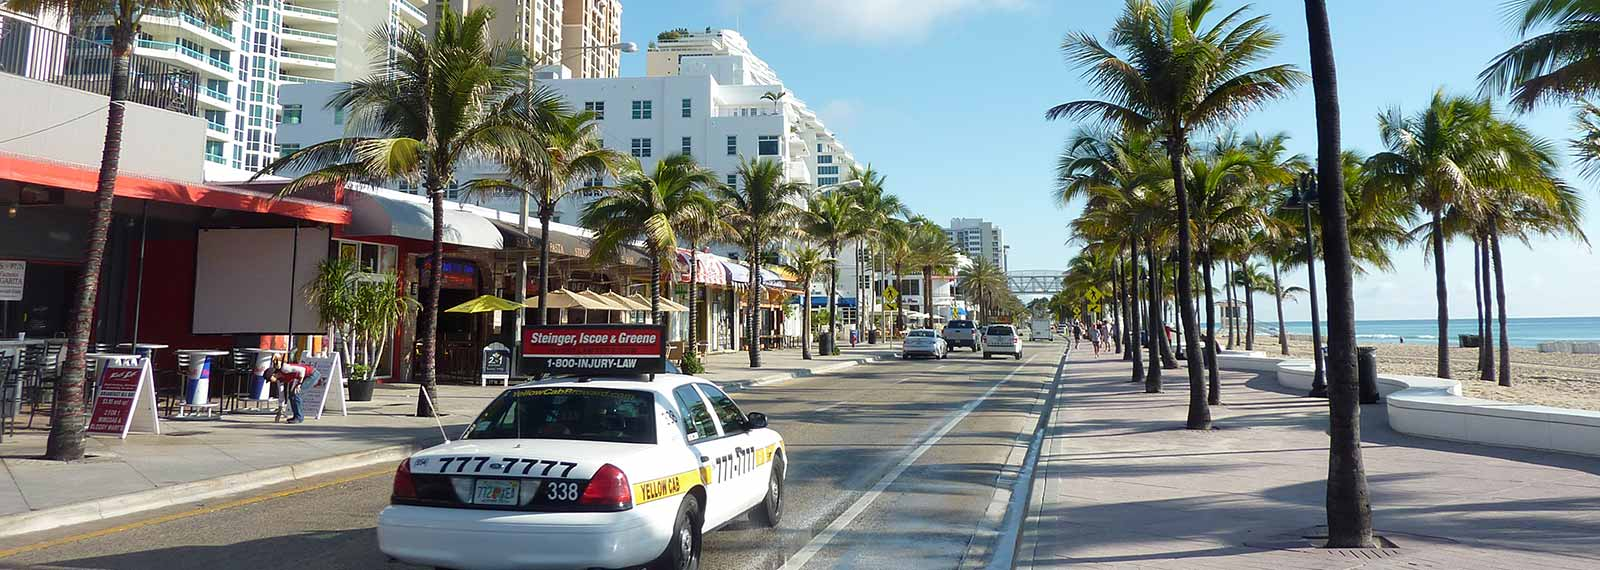 Vacation and road trip in Florida - Florida travel guide